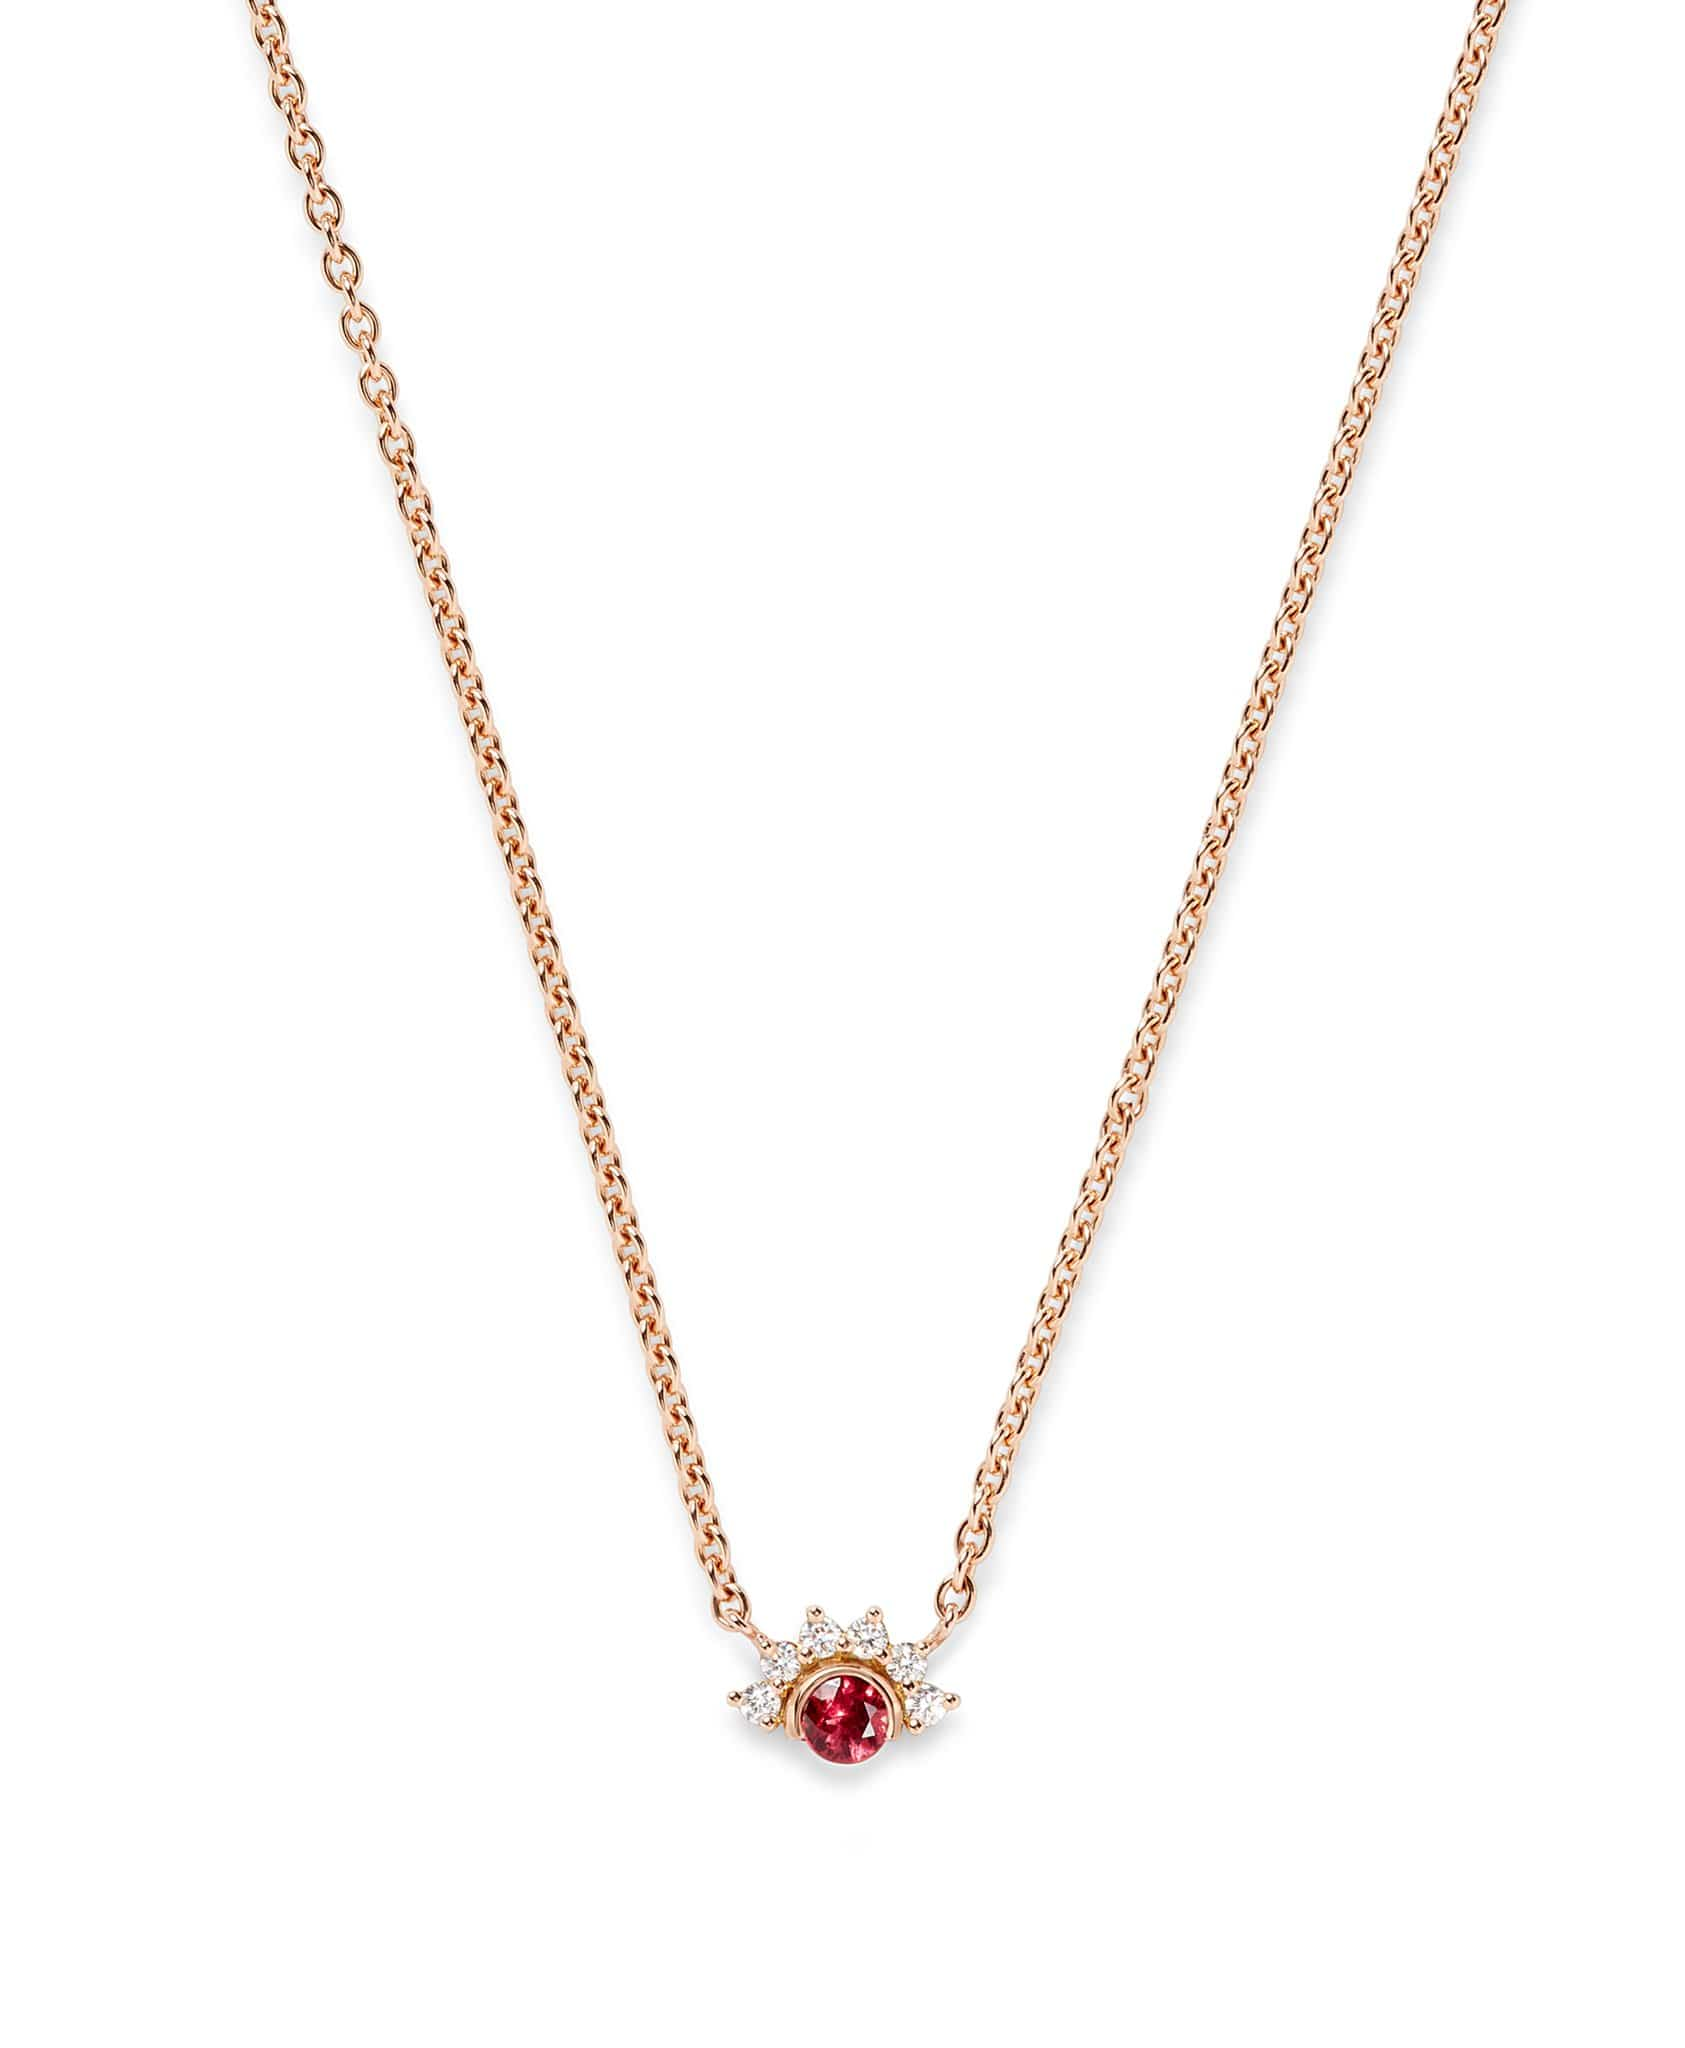 Red Spinel Pendant: Discover Luxury Fine Jewelry | Nouvel Heritage